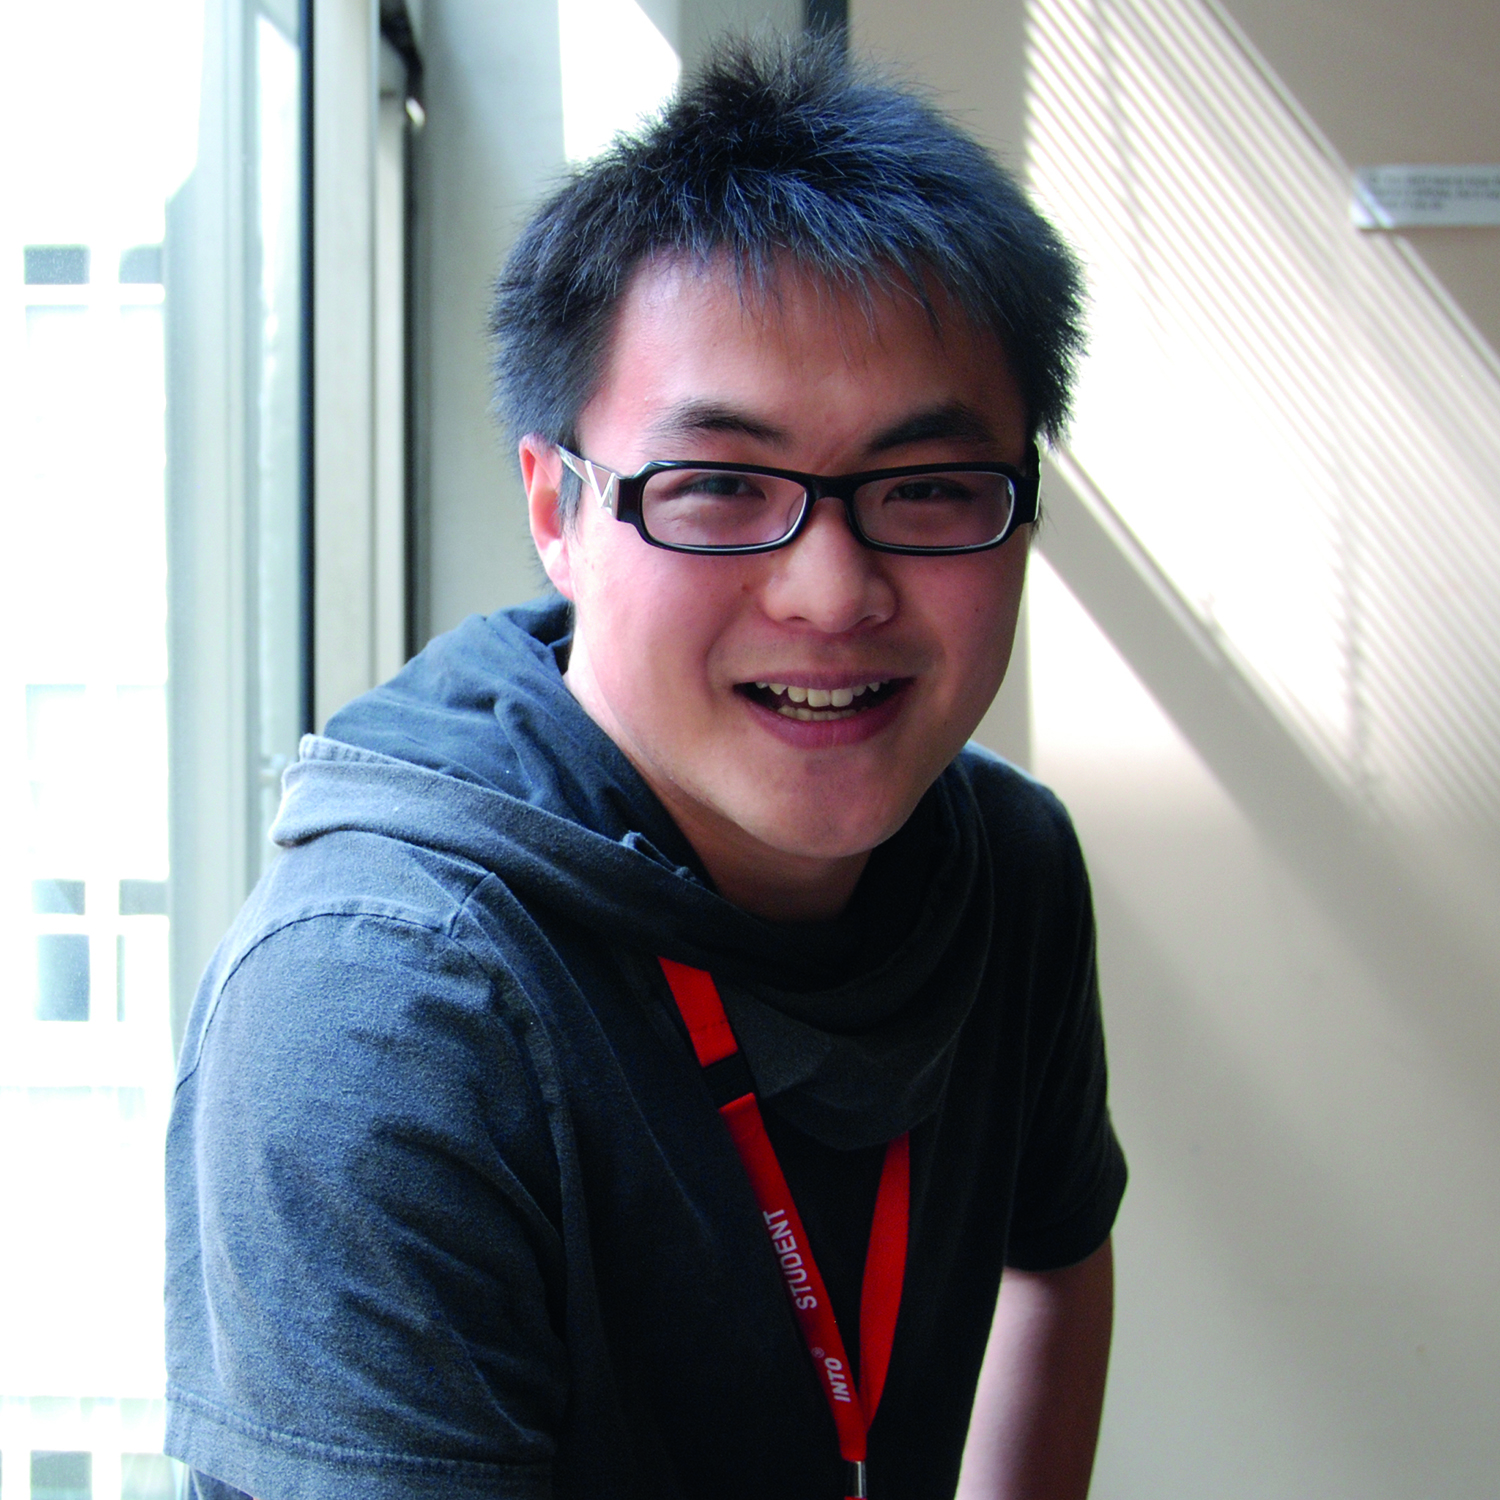 Photo of international student Qian at INTO Manchester